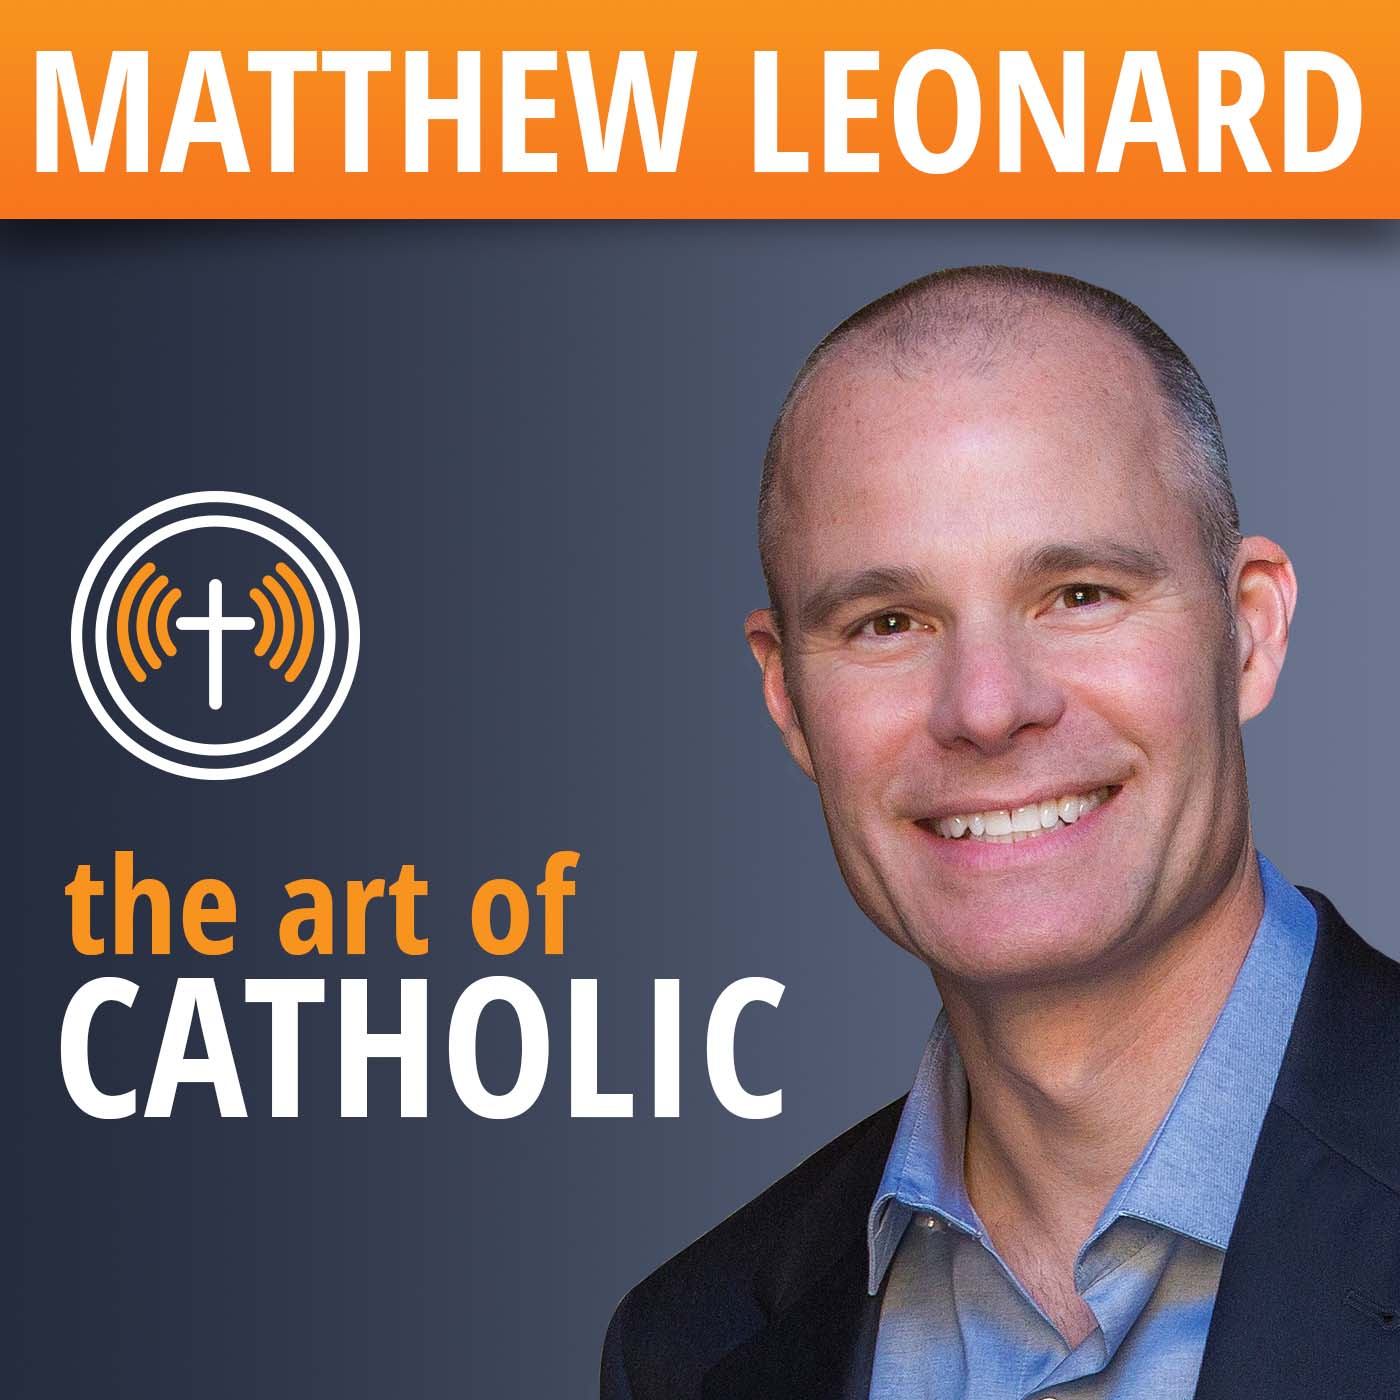 The Art of Catholic with Matthew Leonard